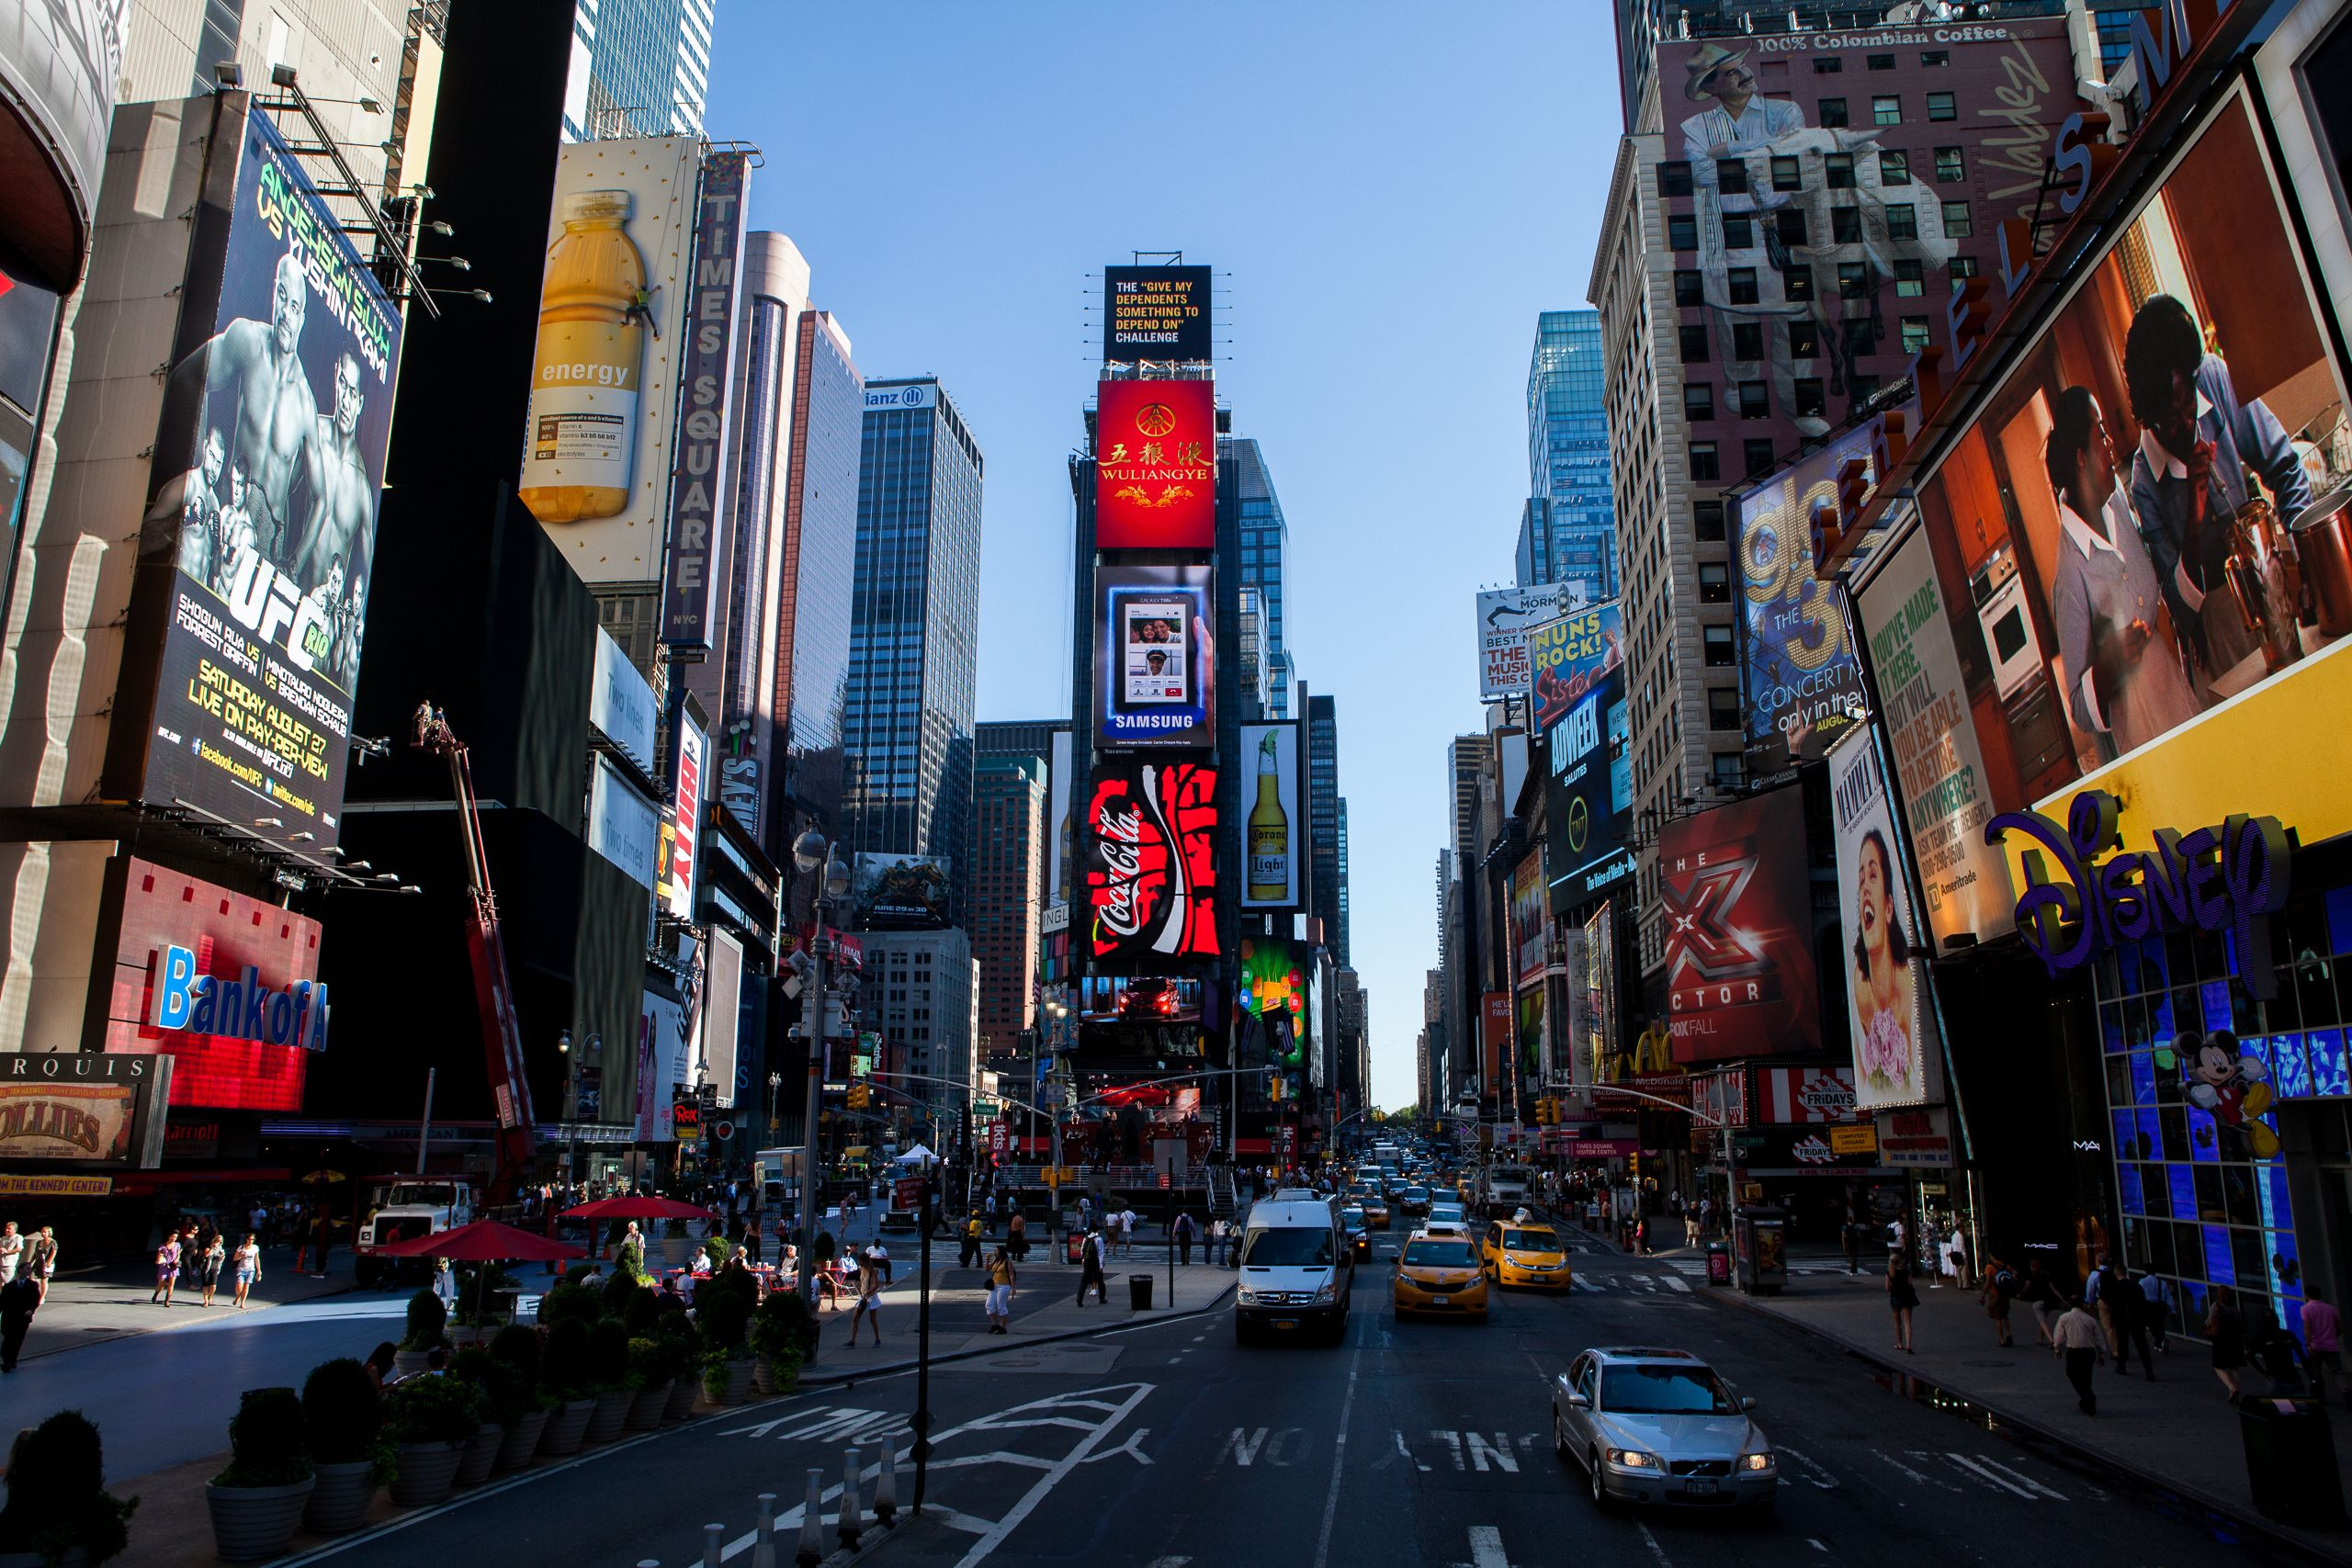 Times Square, August 2011